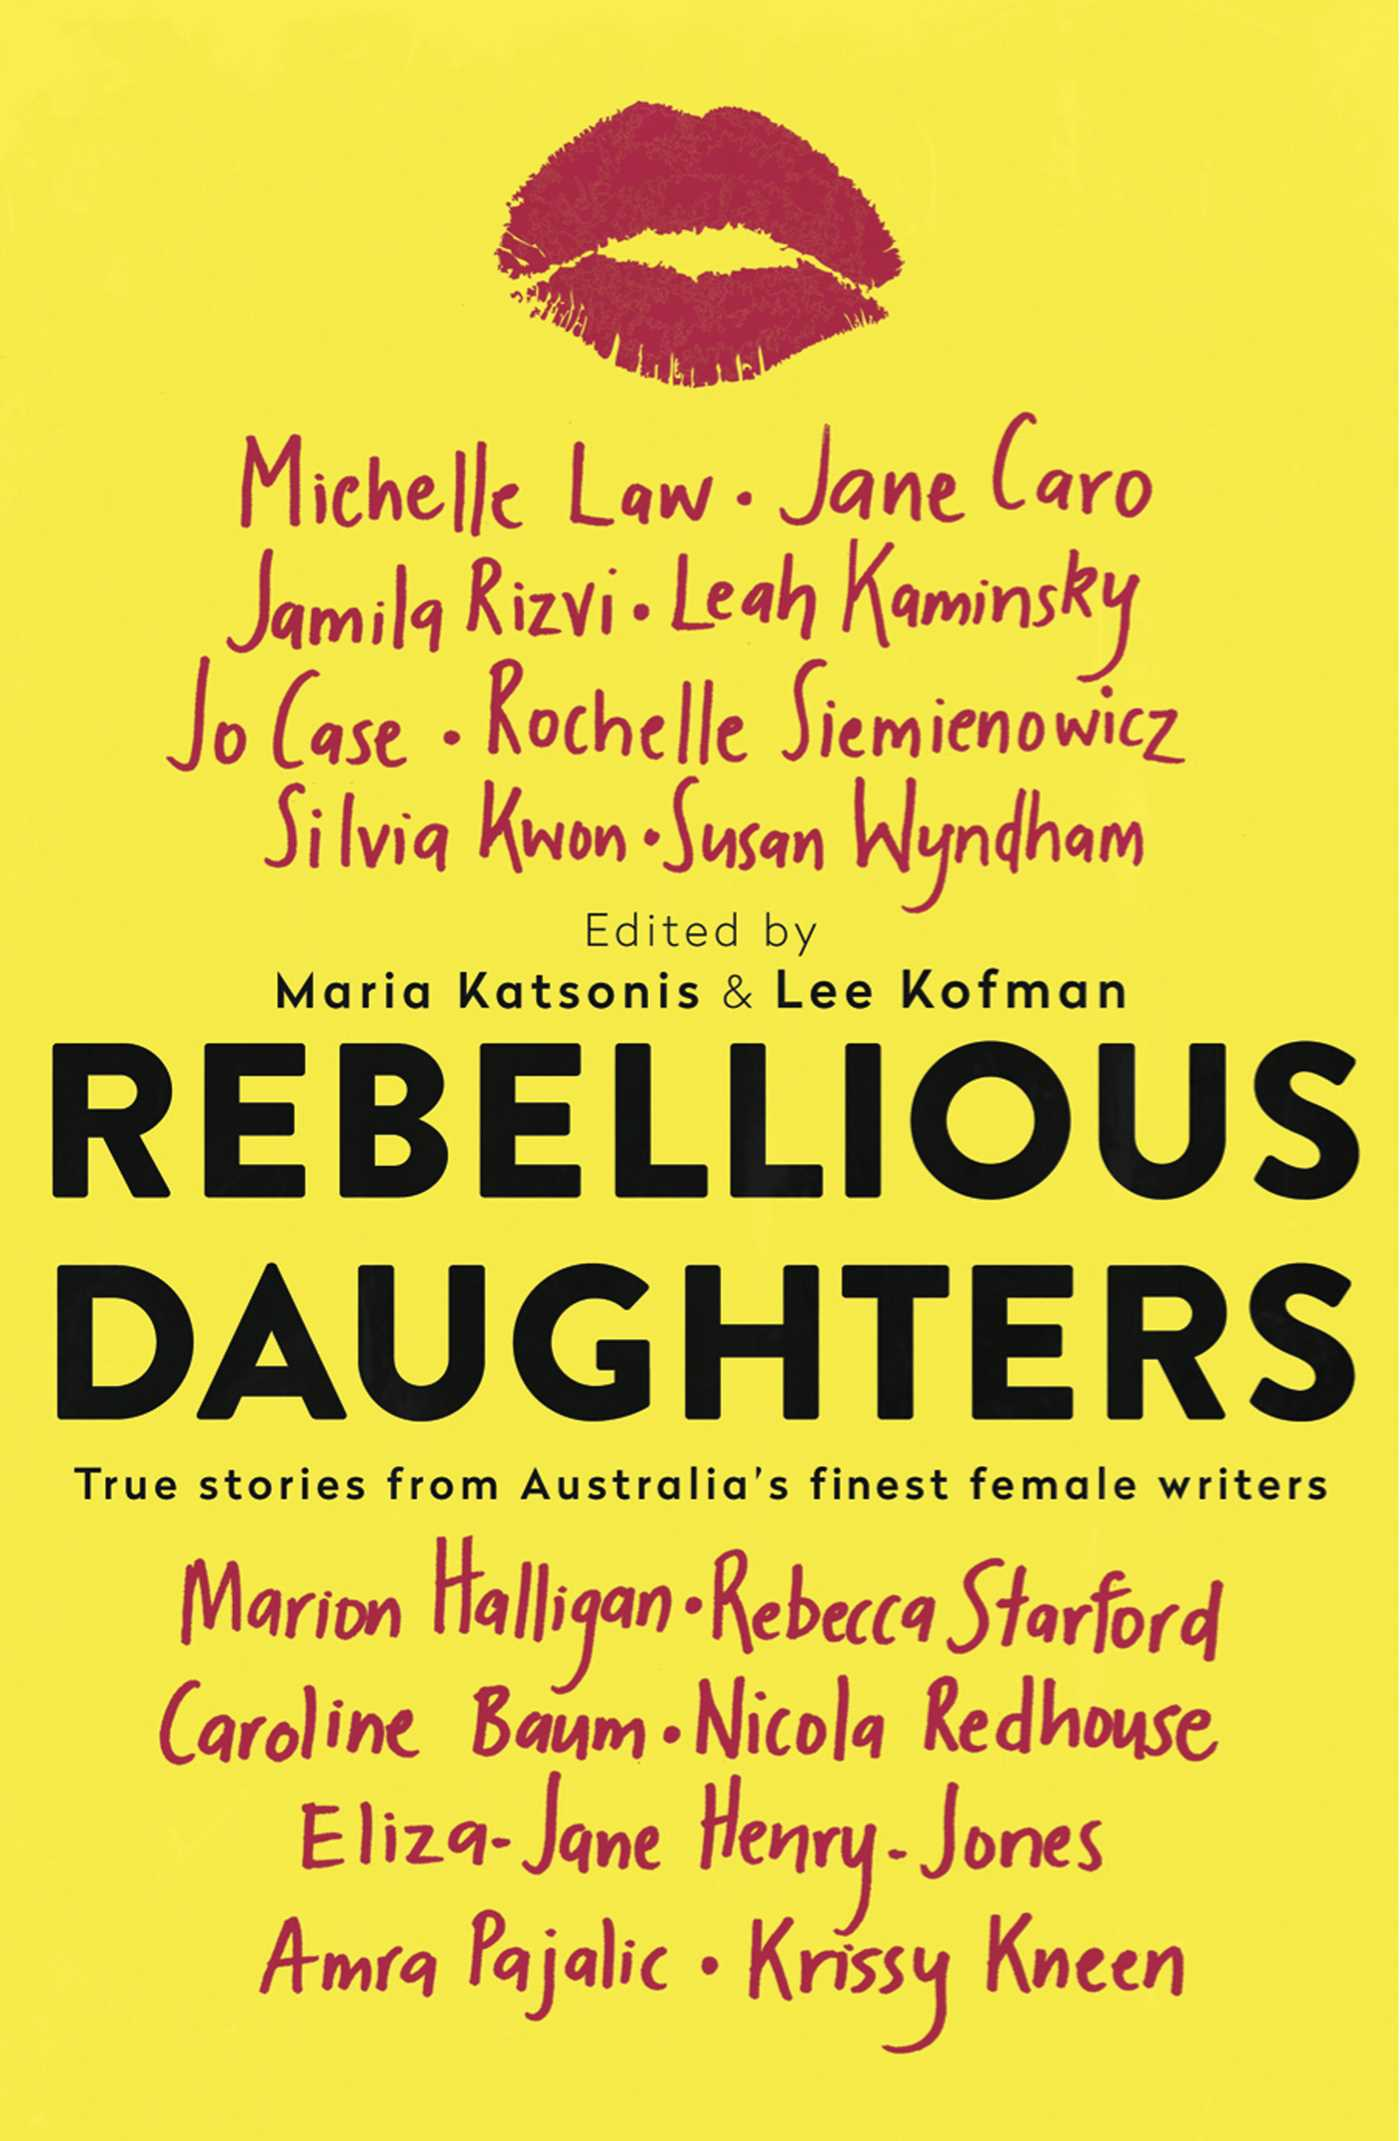 Rebellious daughters 9781925183528 hr